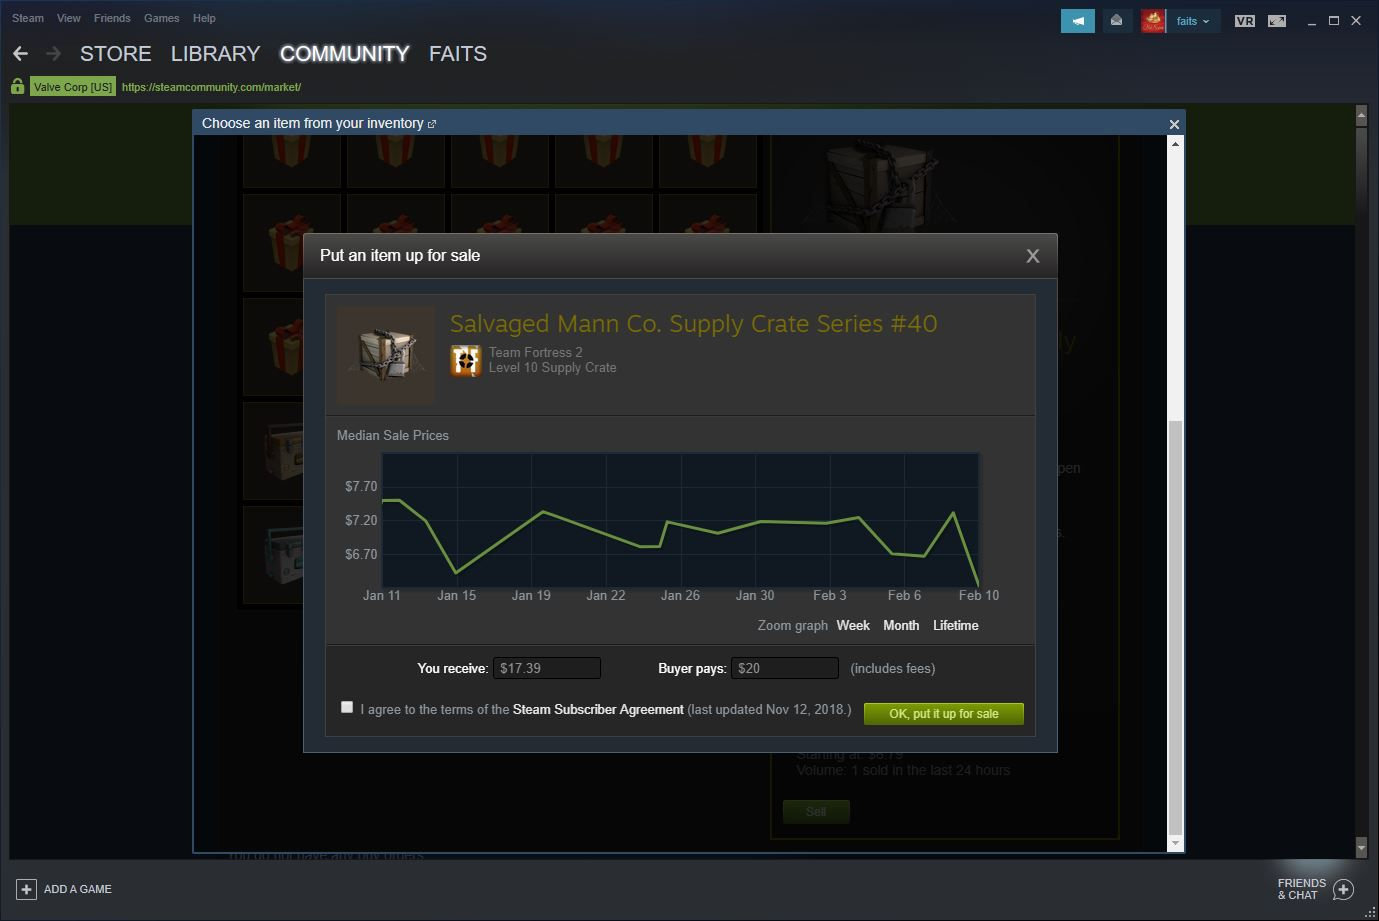 Steam Community Market listing page.